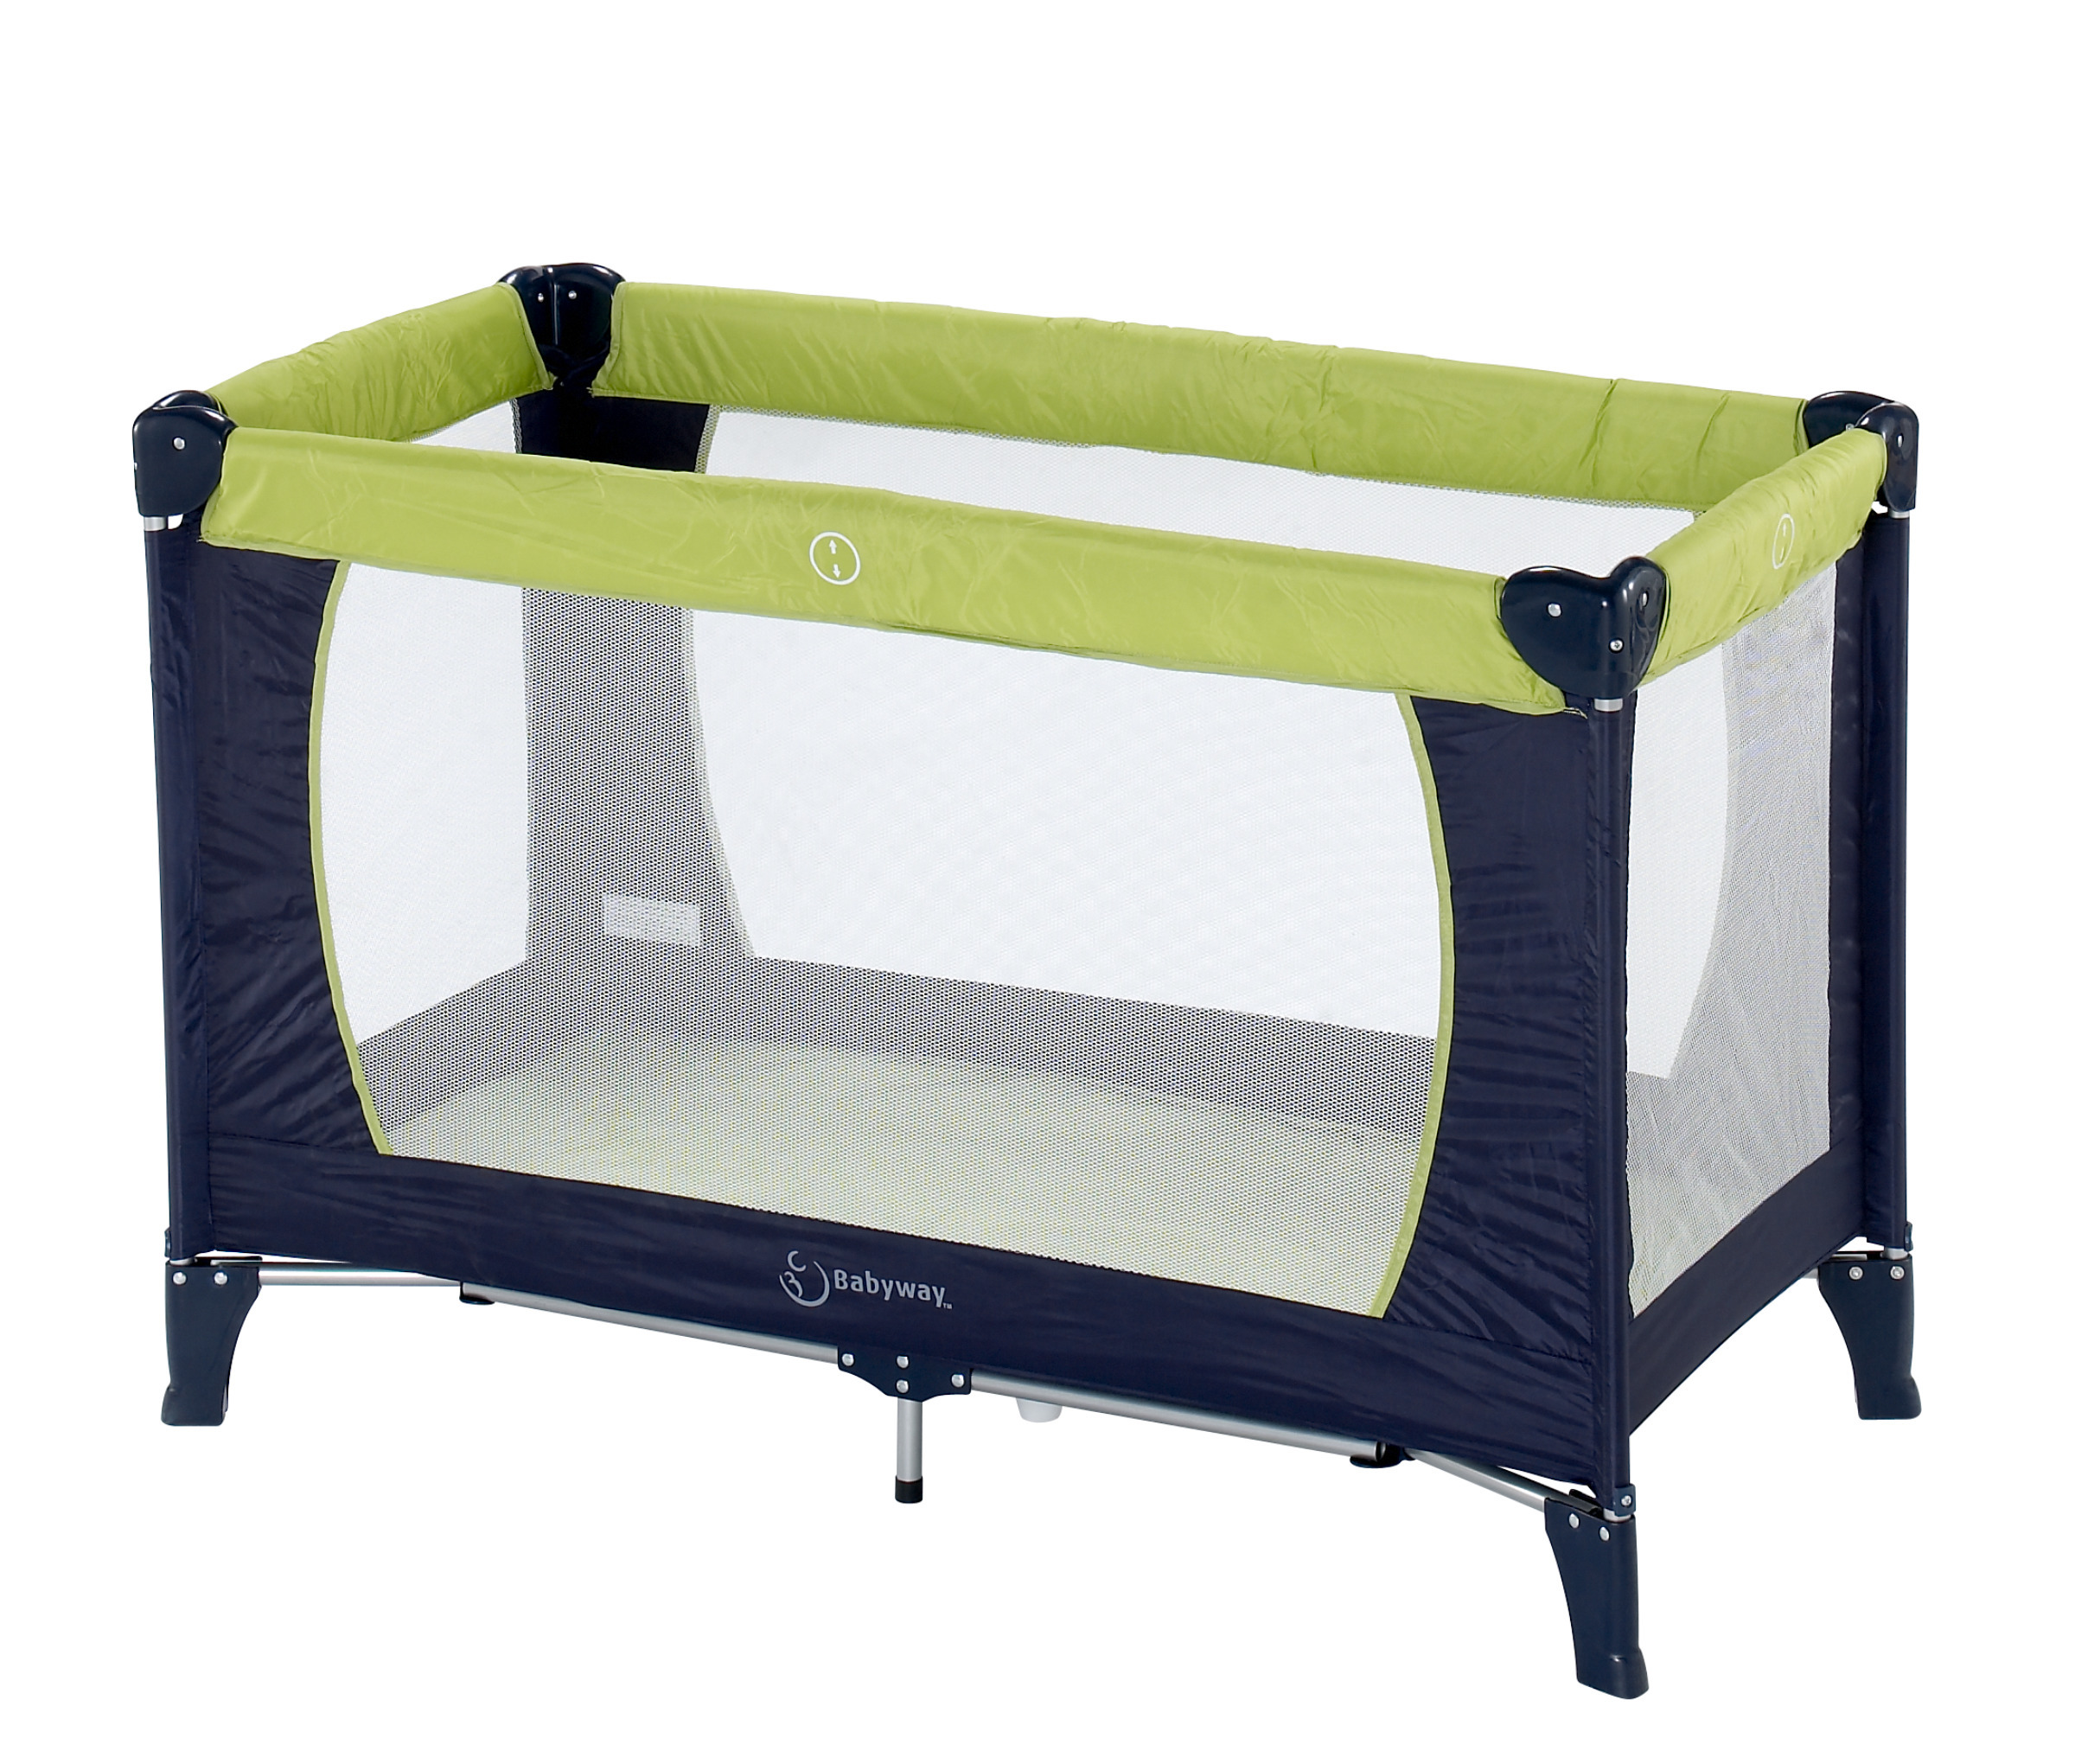 NEW TRAVEL COT MATTRESS FIT 119 X 59 CM BABY DAN HAUCK FULLY BREATHABLE